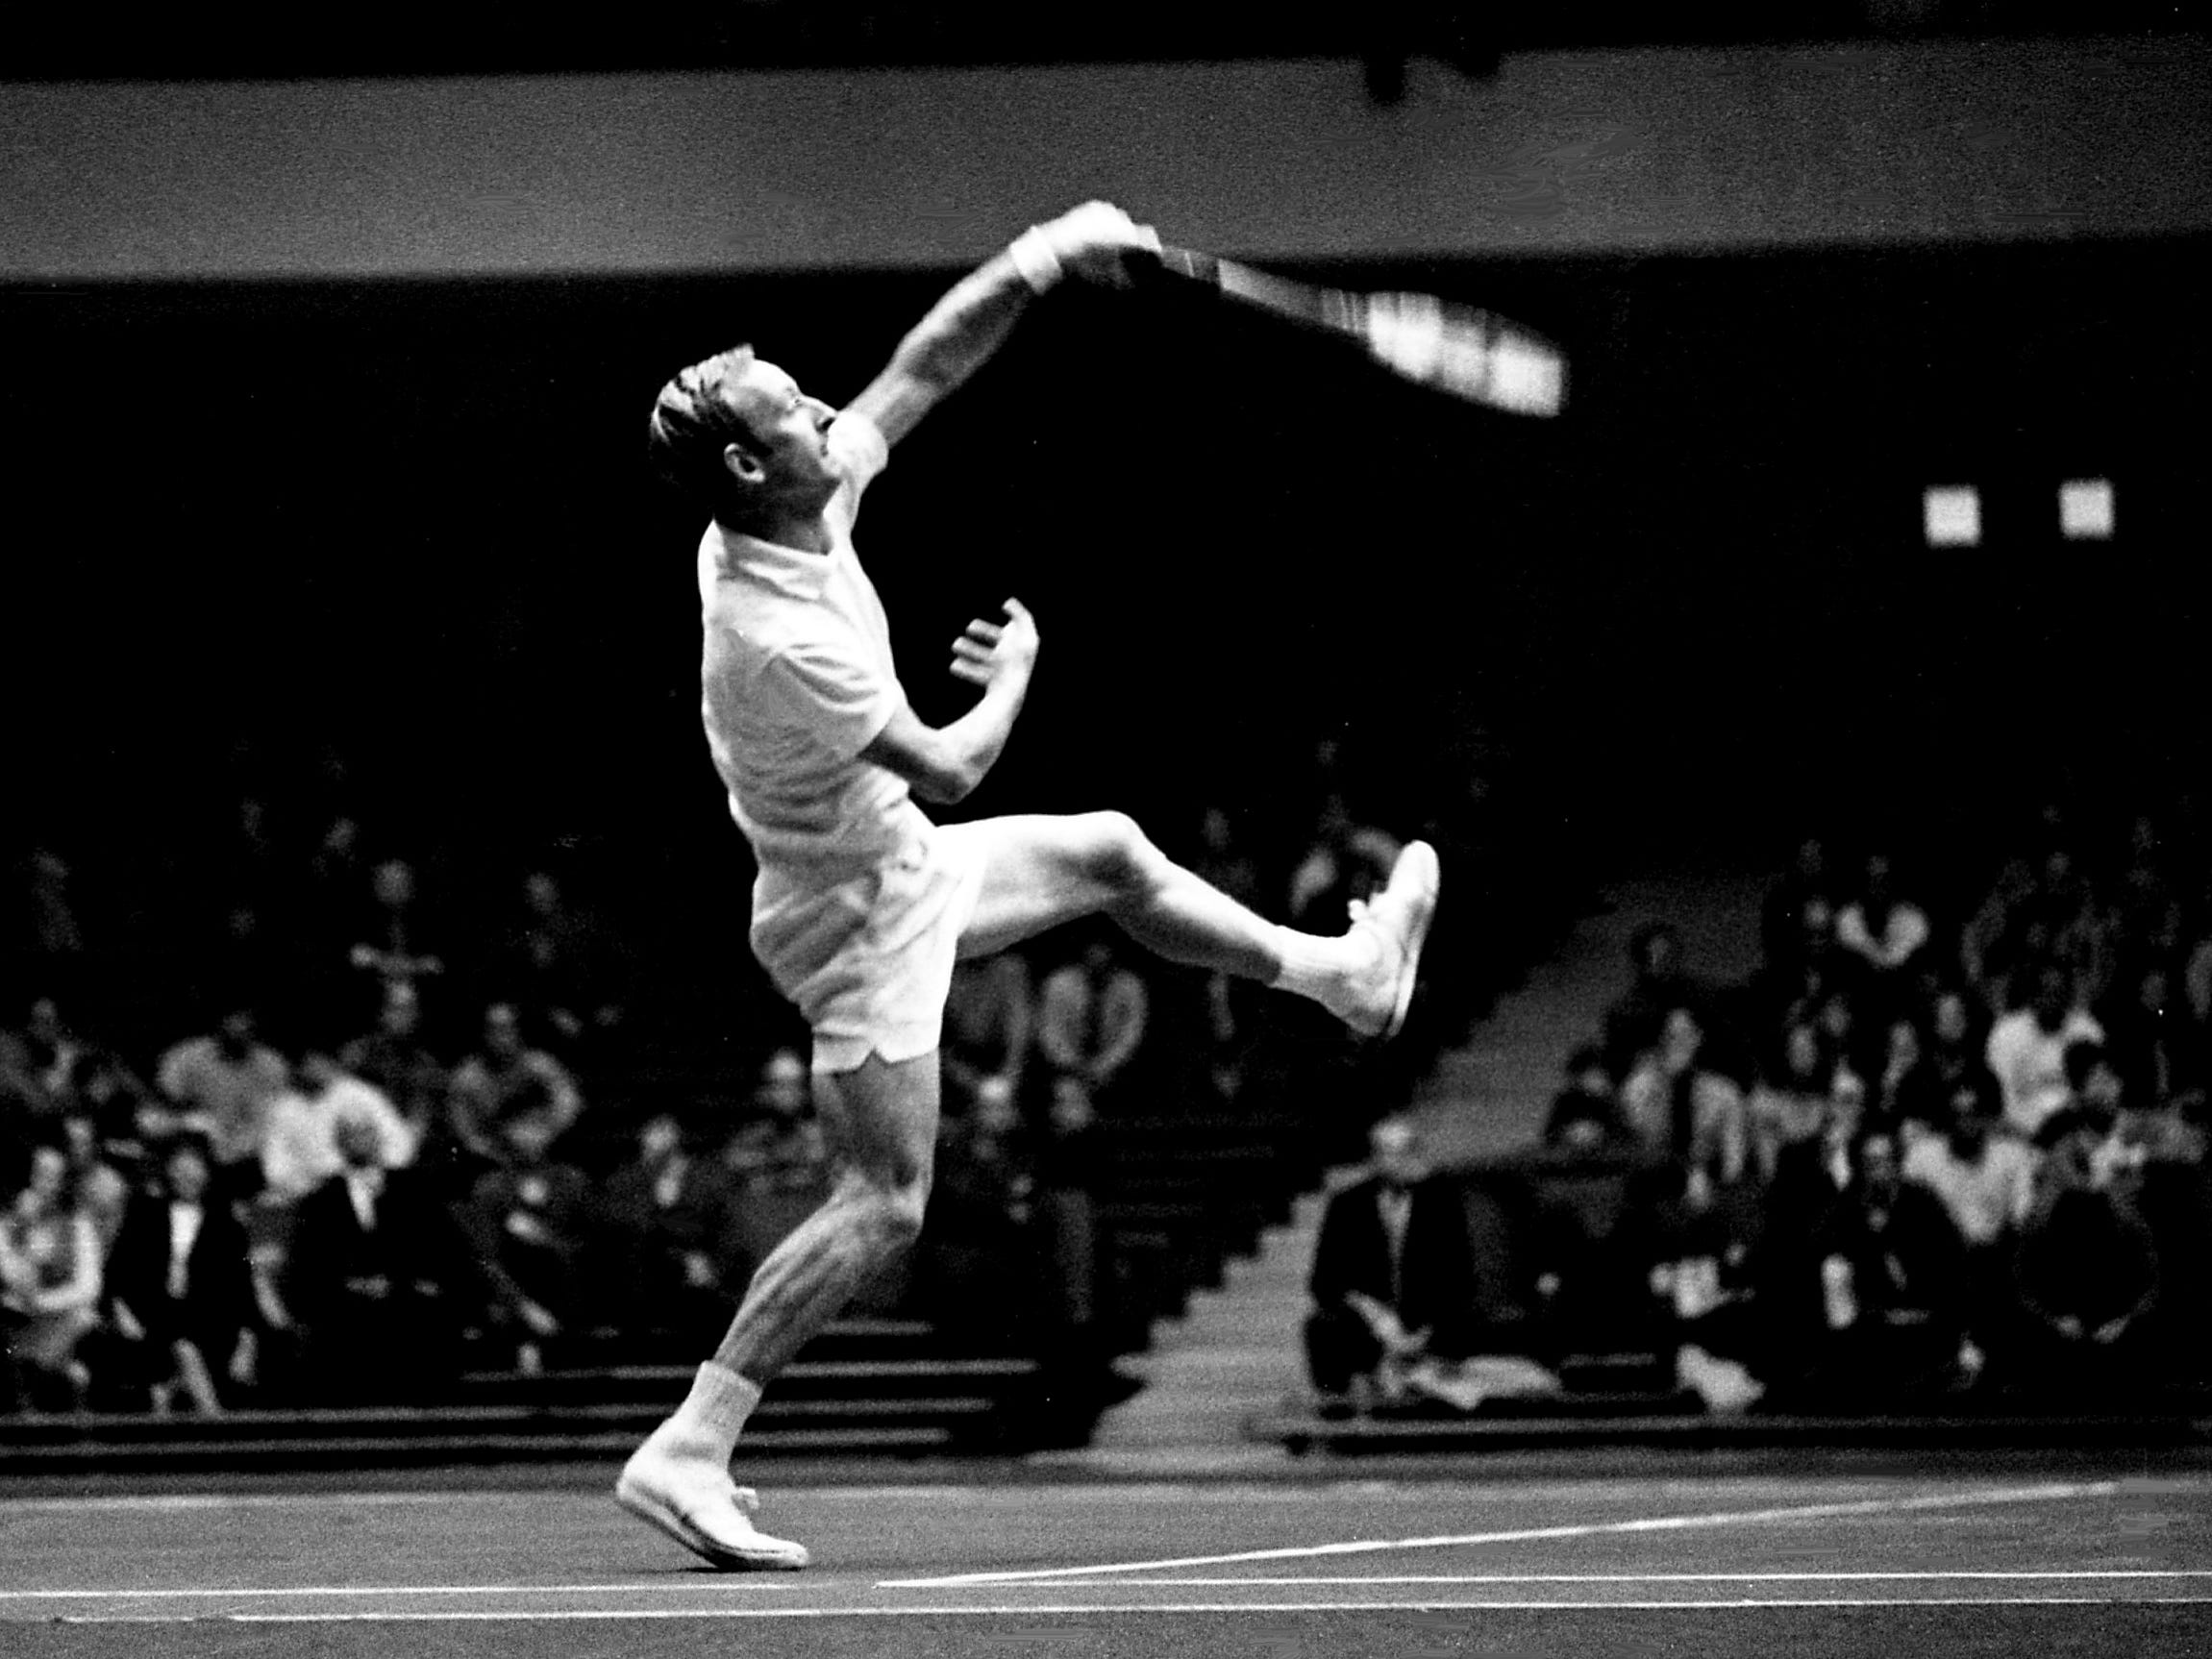 World's top-ranked player Rod Laver follows through on an overhead smash en route to winning the singles championships Dec. 10, 1968, in the Dixie Tennis indoor tournament at Vanderbilt's Memorial Gym. Laver defeated fourth-ranked fellow Australia native Ken Rosewall 6-2, 6-3.